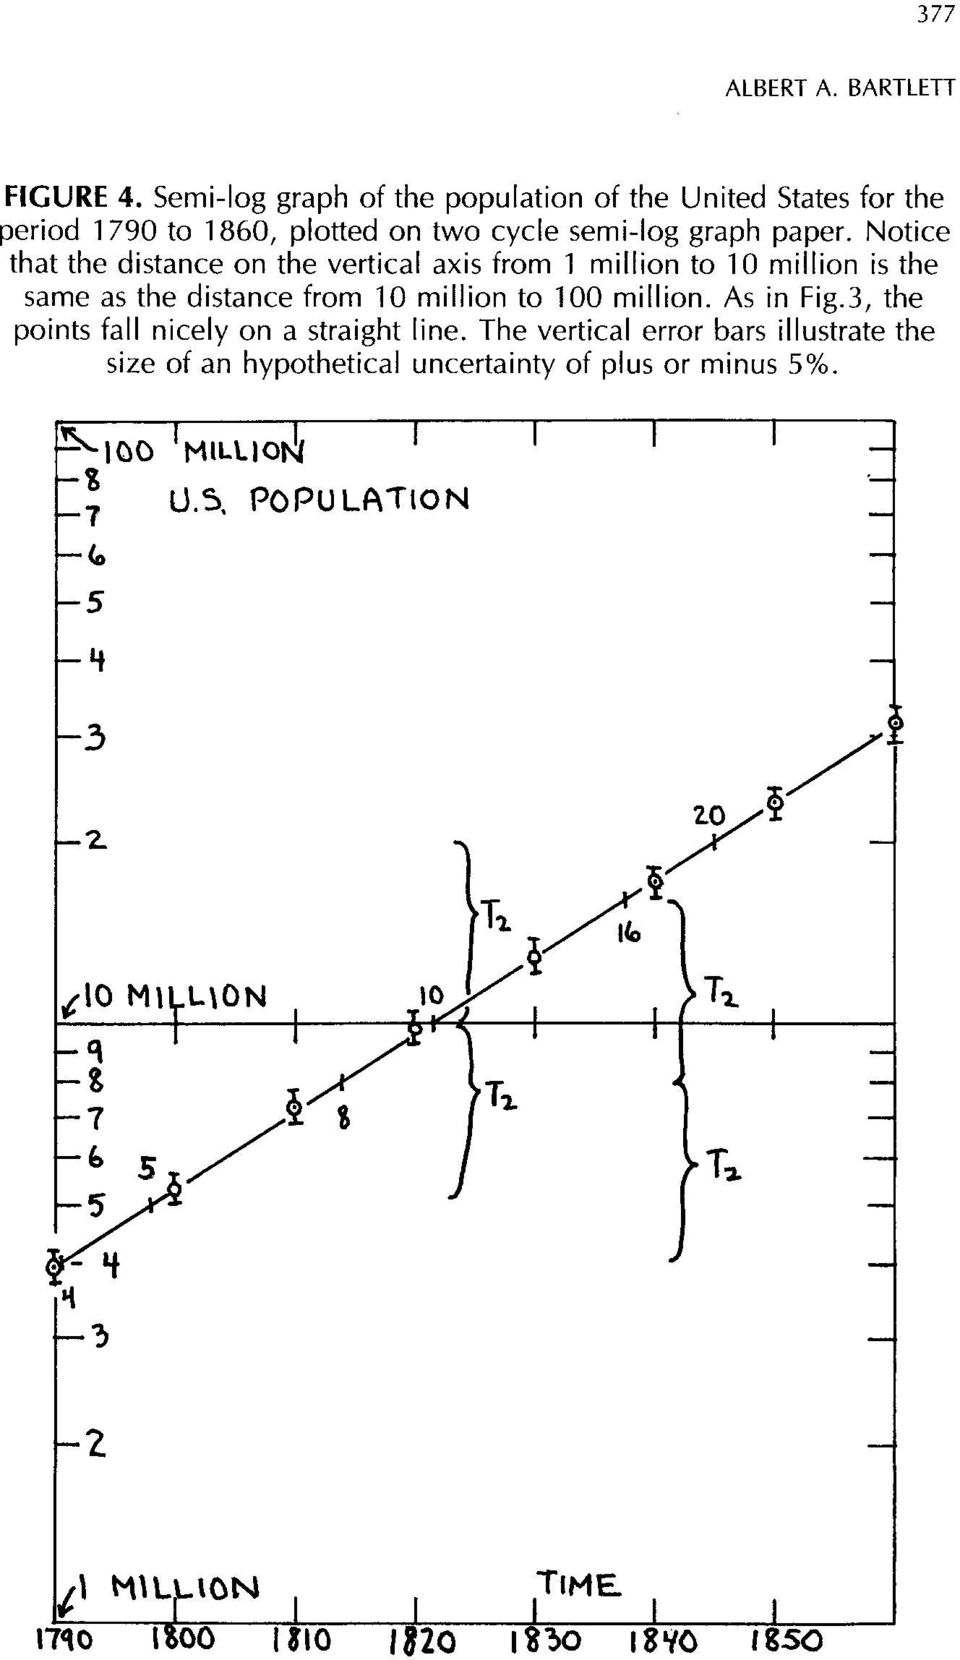 Notice that the distance on the vertical axis from 1 million to 10 million is the same as the distance from 10 million to 100 million. As in Fig.